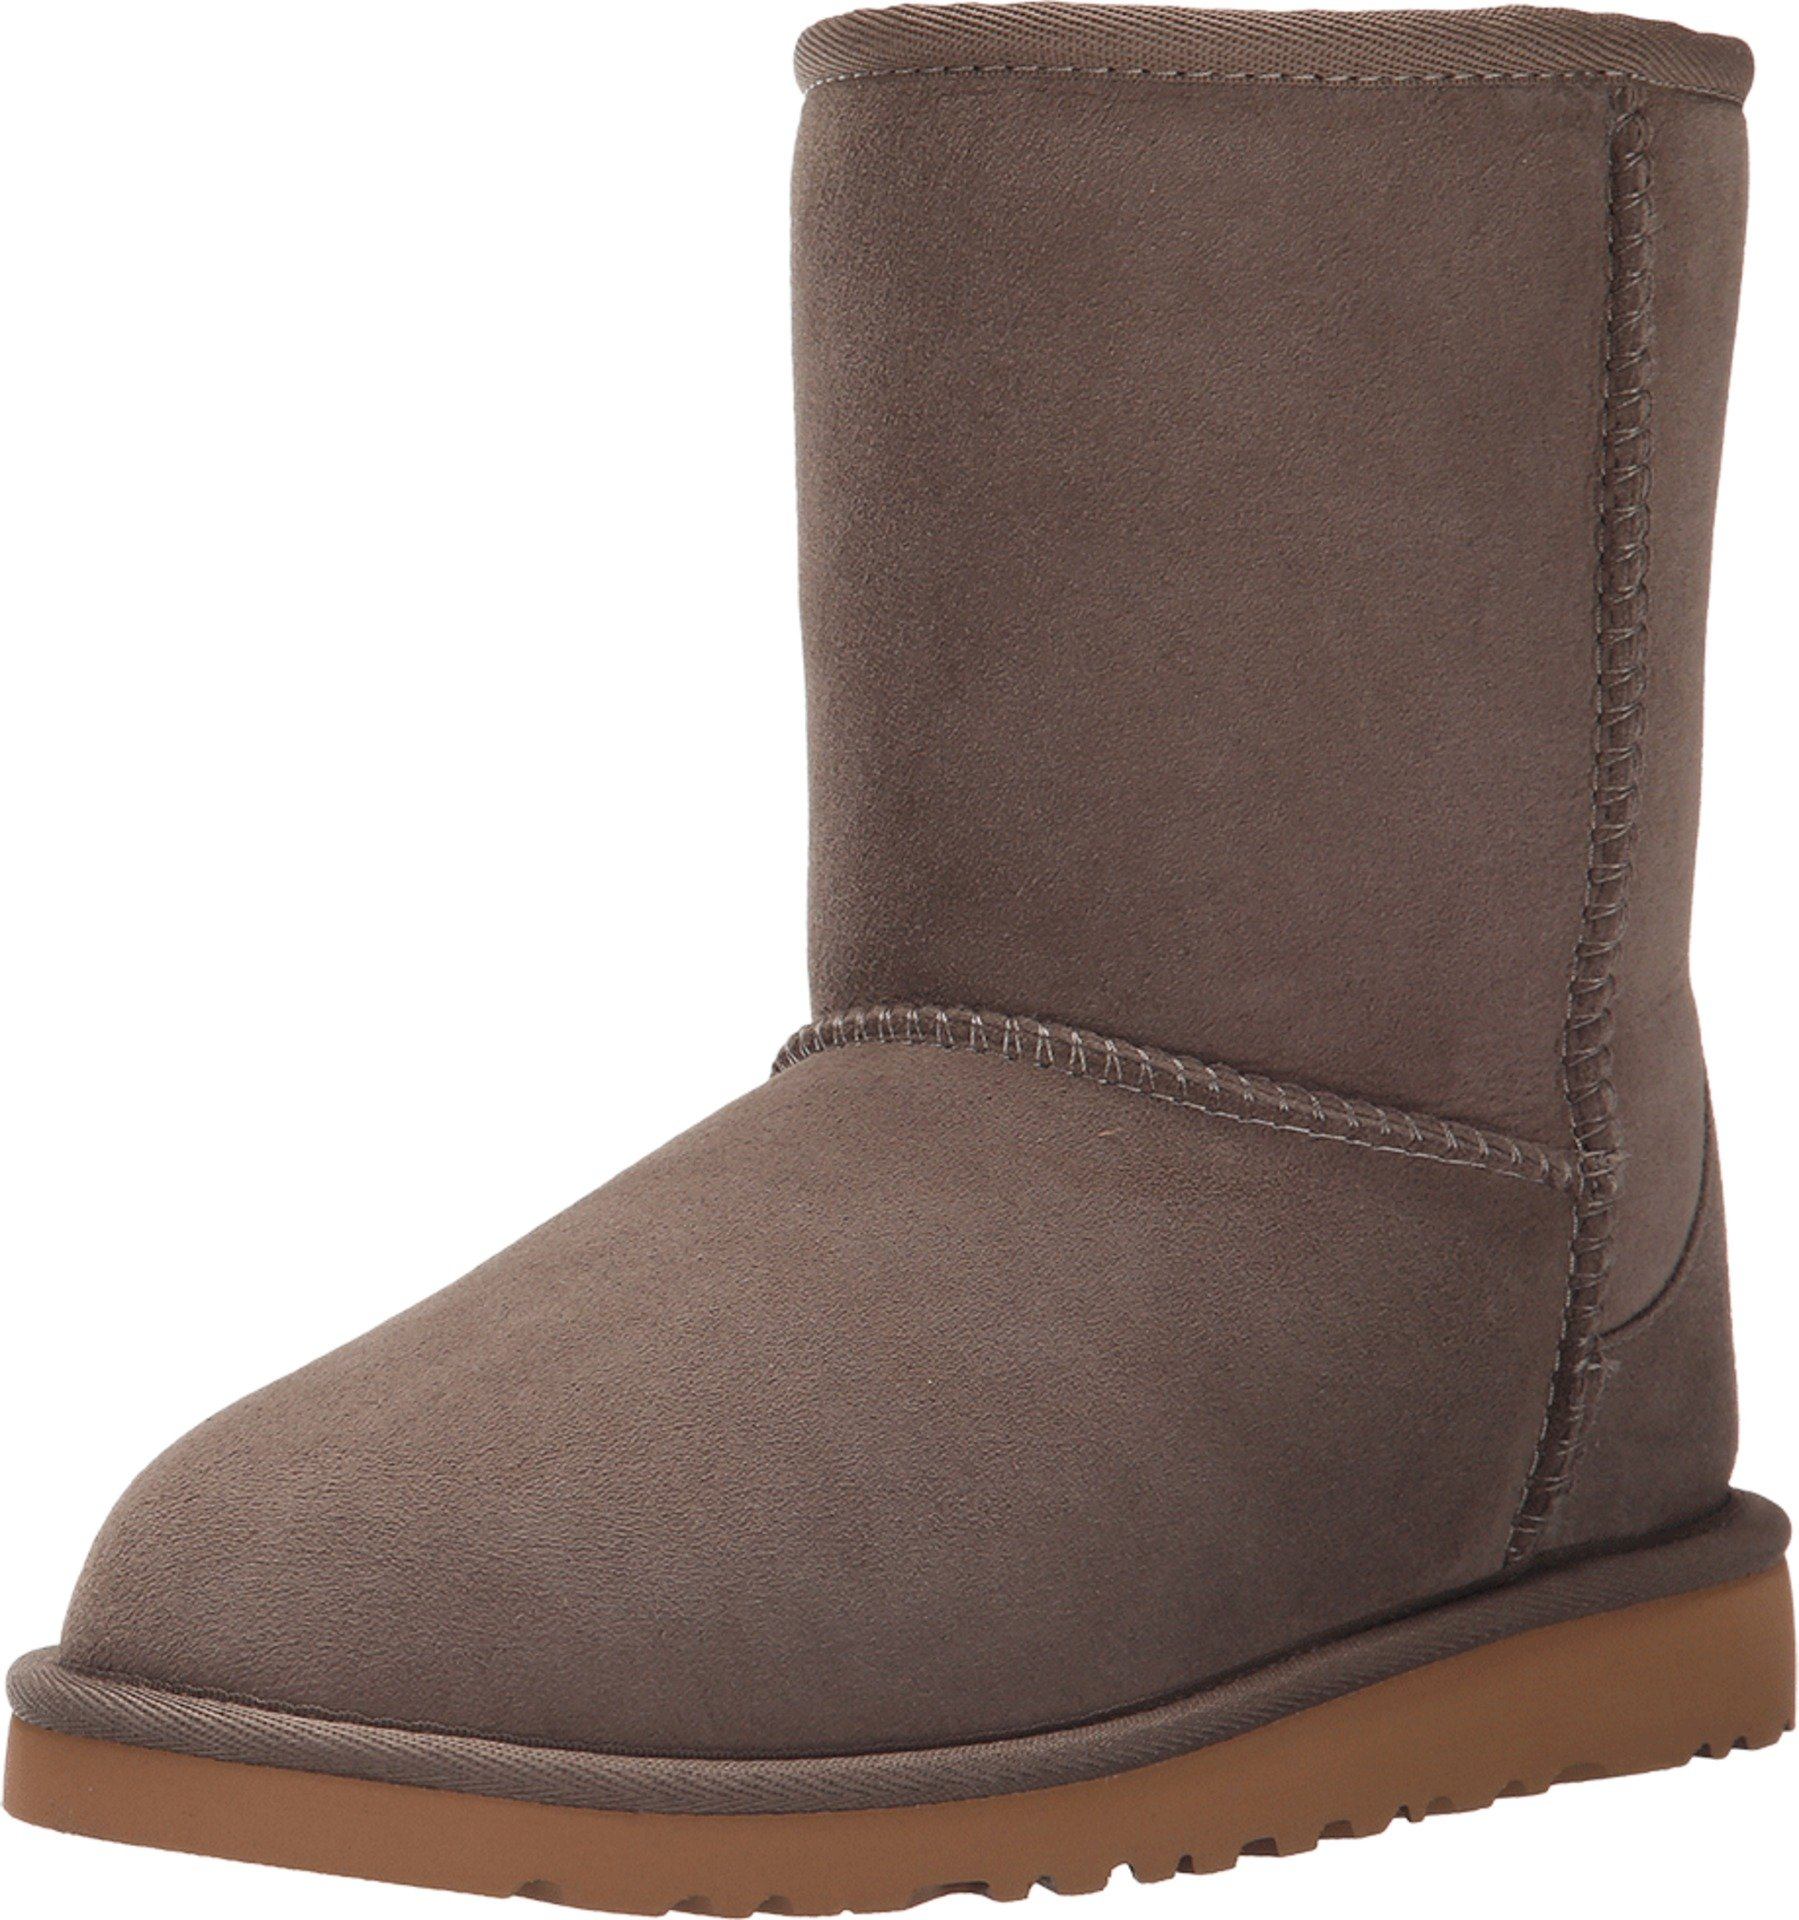 UGG Kids Unisex Classic (Big Kid) Primer Twinface Boot 5 Big Kid M by UGG